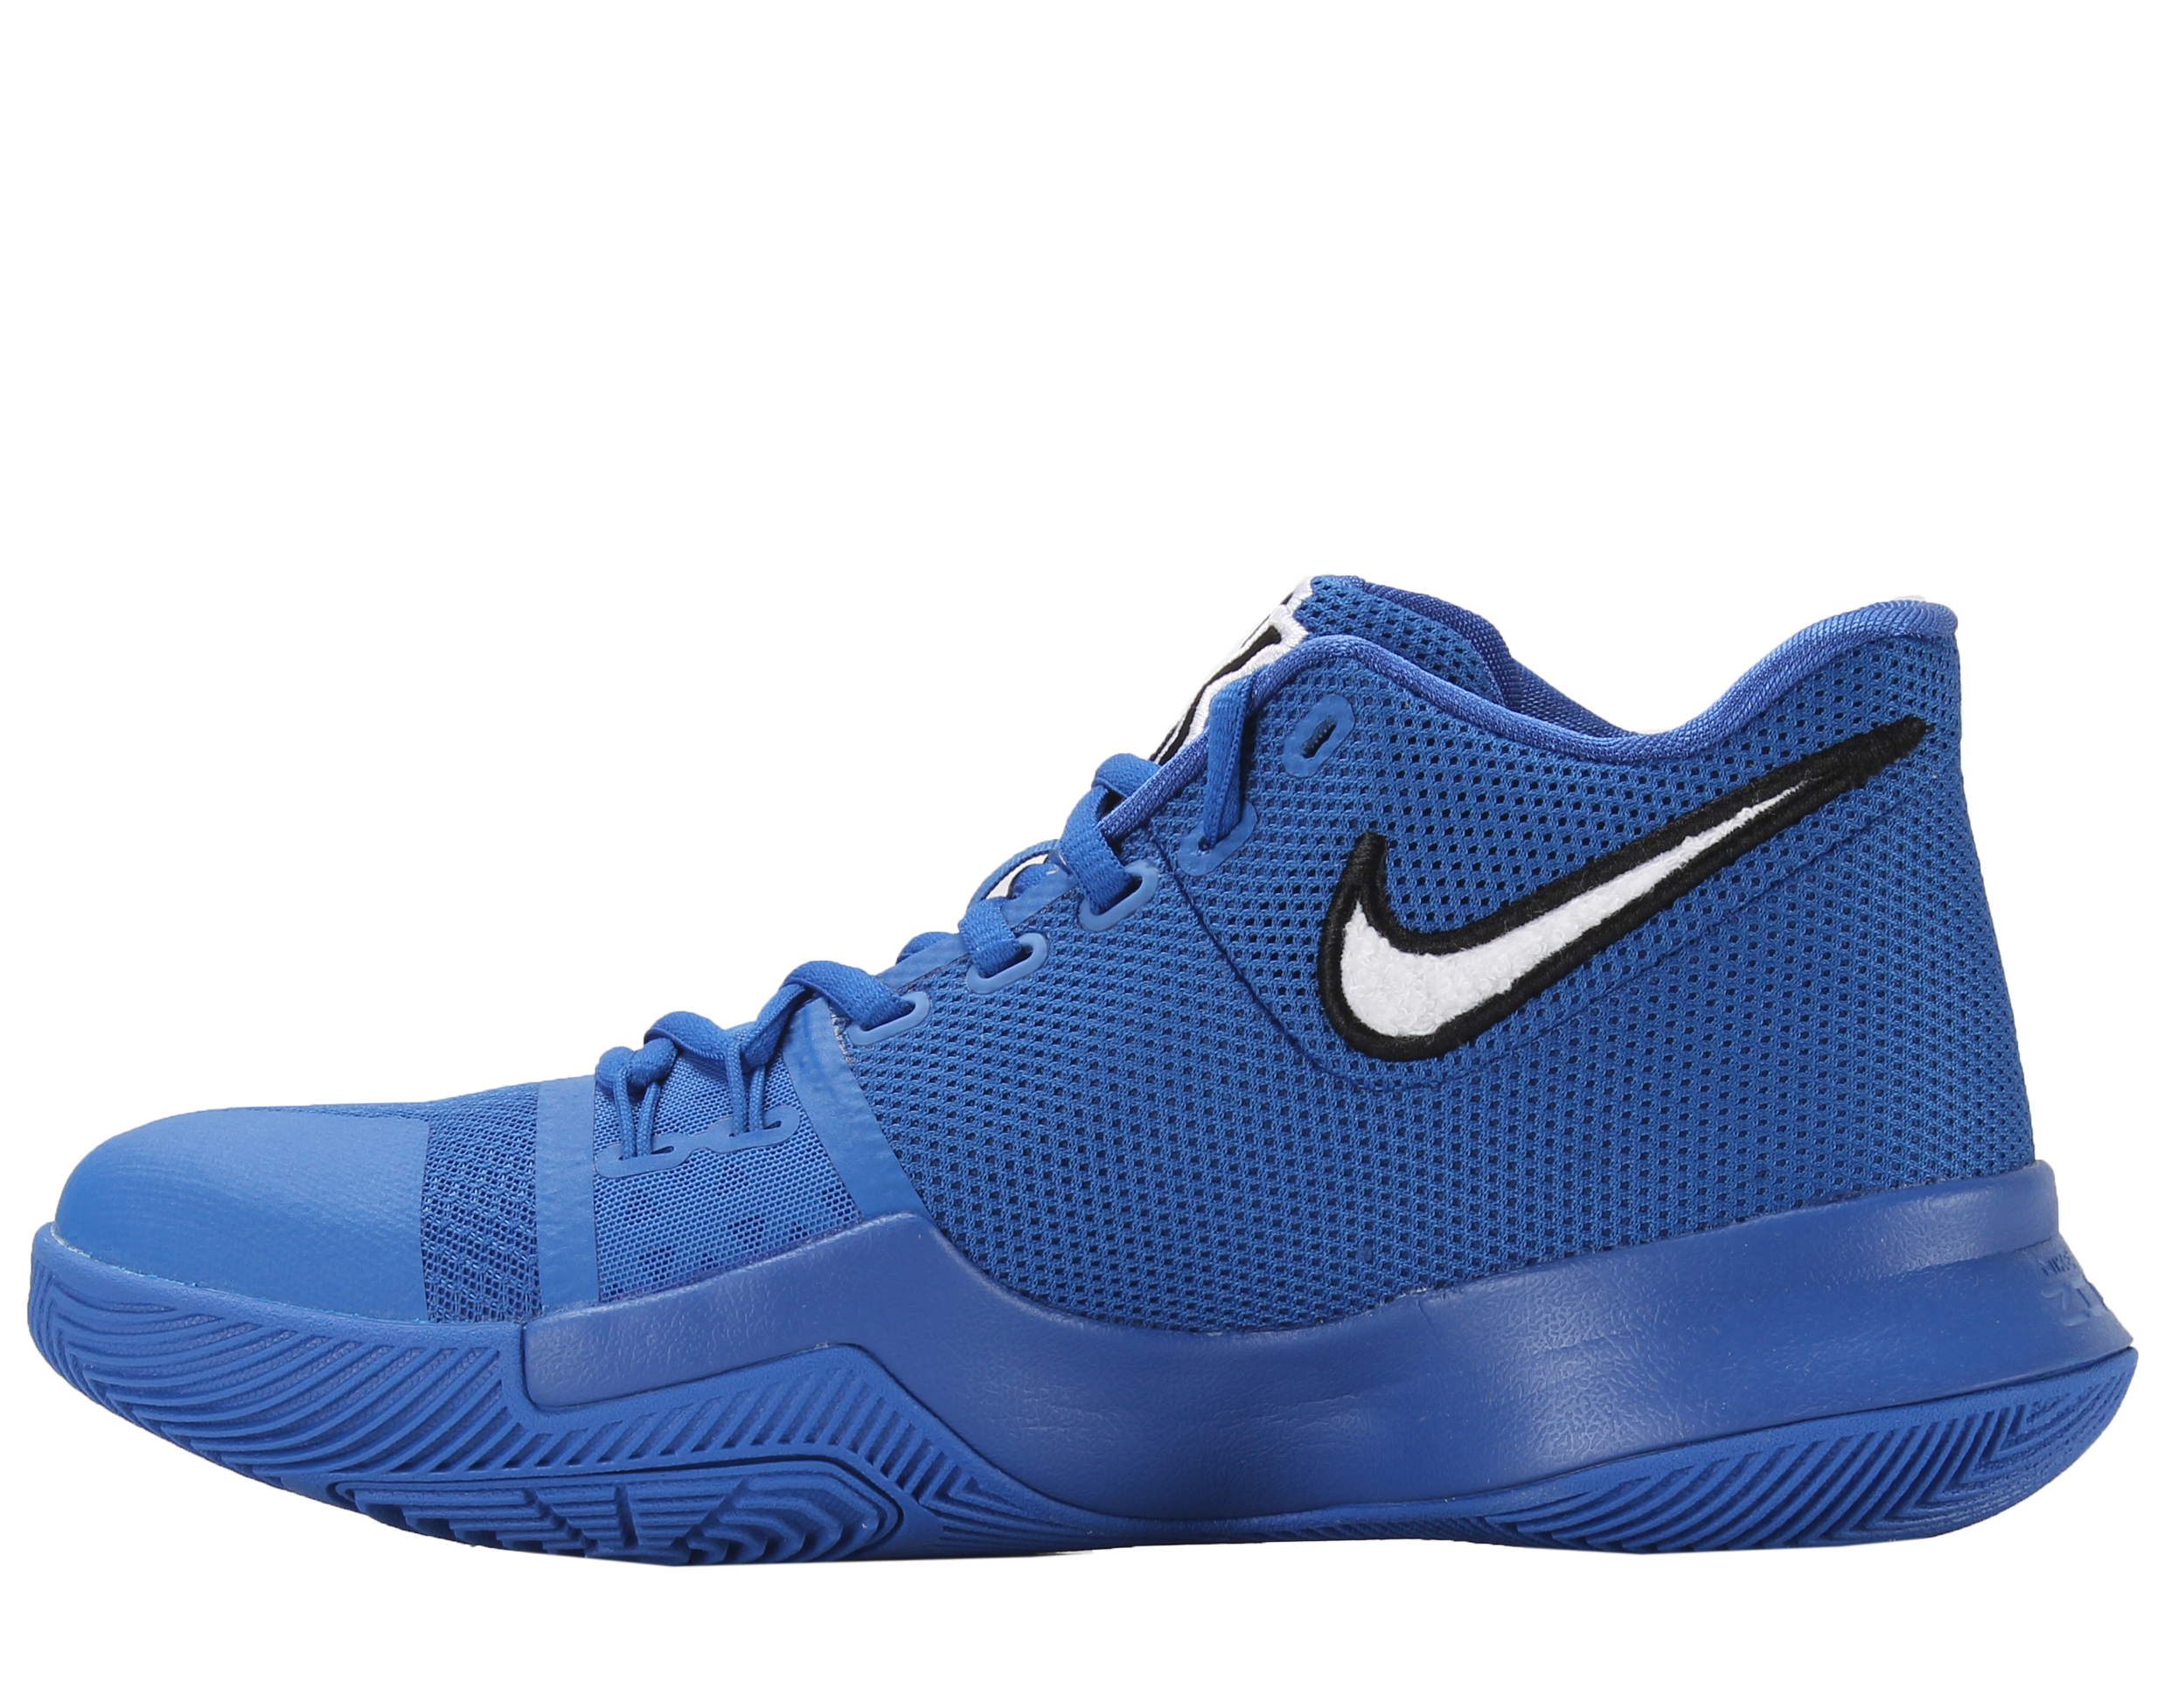 711d4f3145 canada nike nike kyrie 3 duke black game royal mens basketball shoes 922027  001 walmart dd67e